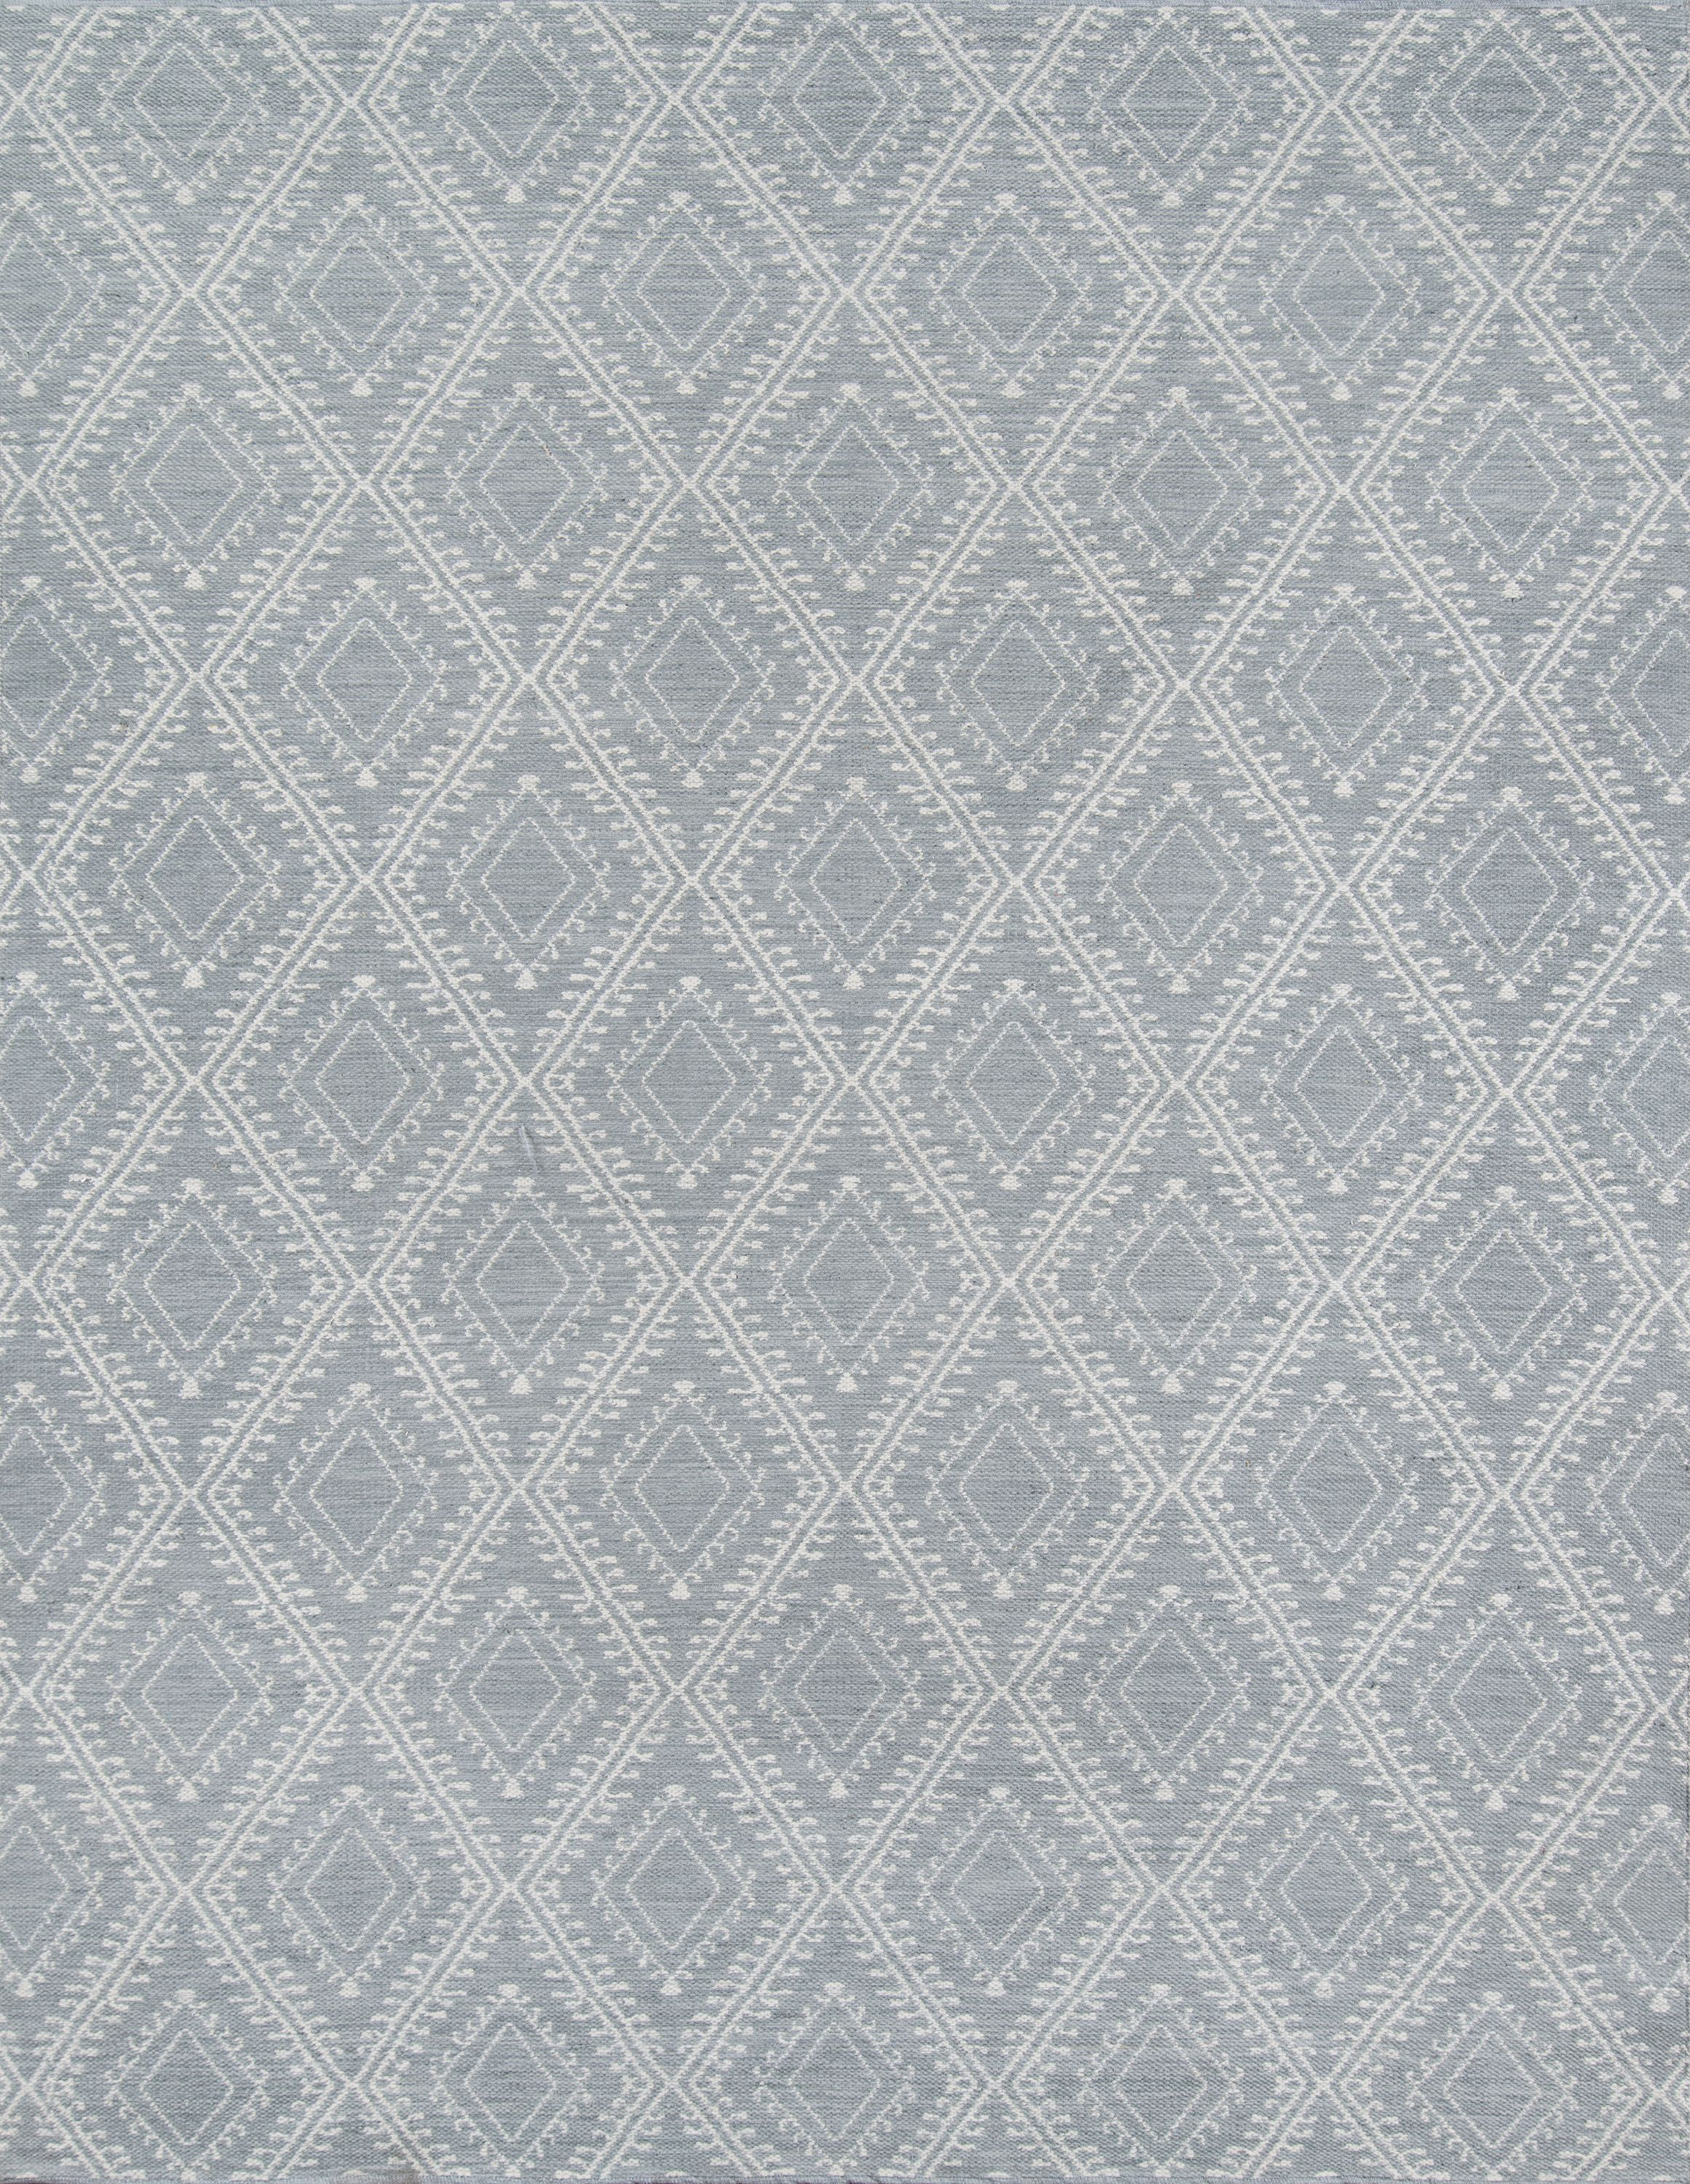 Erin Gates by Momeni Easton Pleasant Grey Indoor Outdoor Hand Woven Area Rug 2' X 3' by Momeni